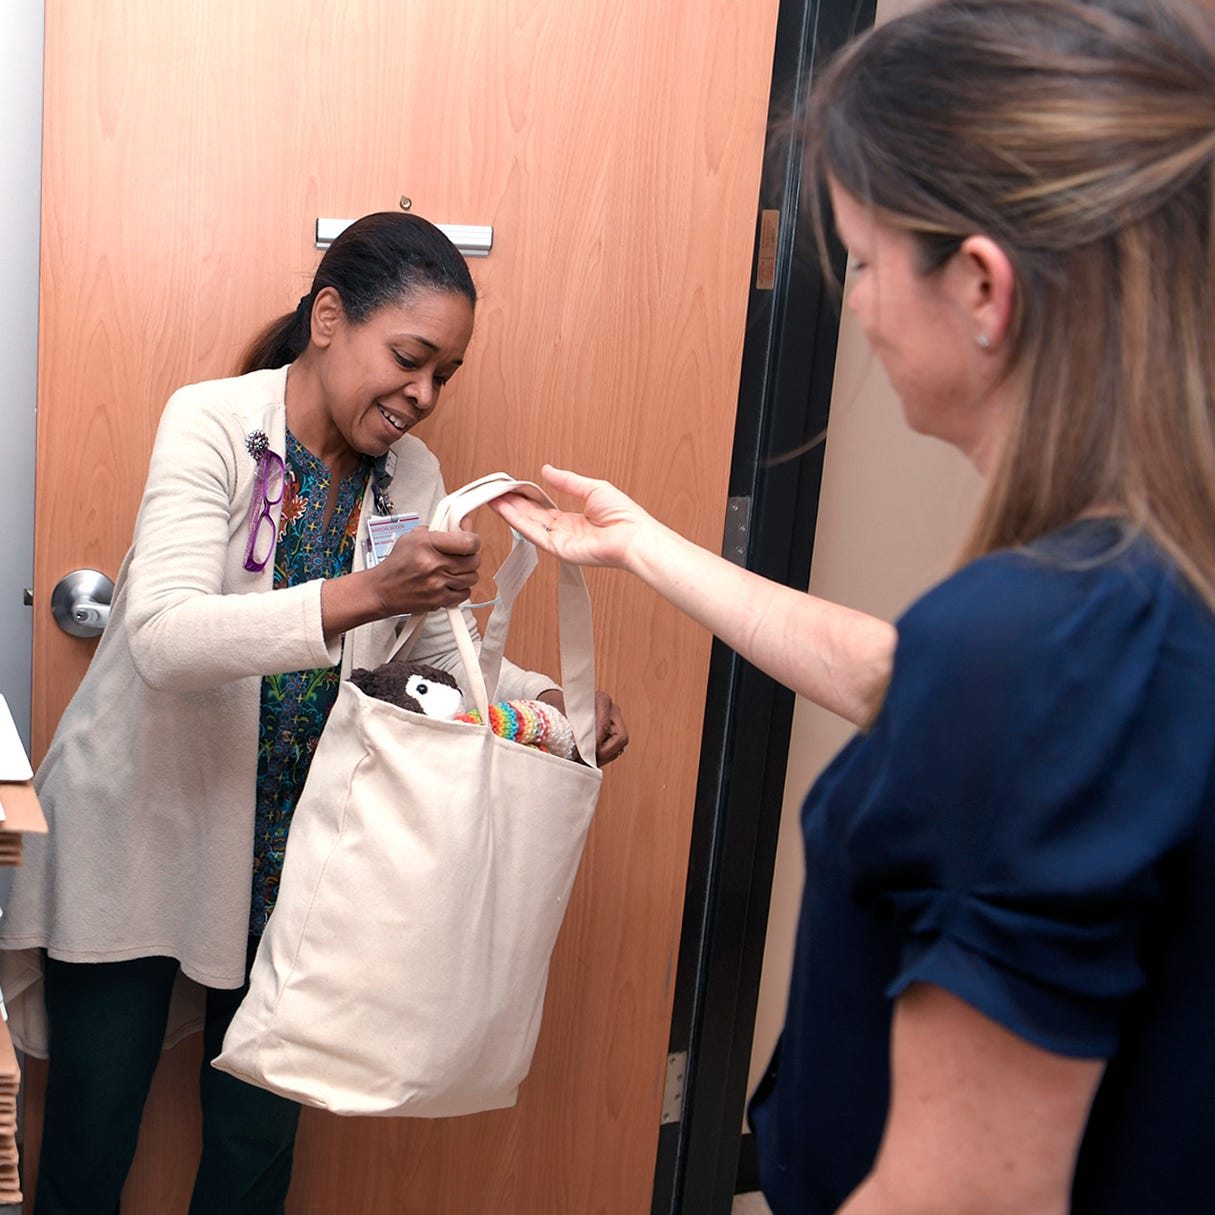 Clothing and hope: Strick's Gift helps provide for Nashville's newborns in need